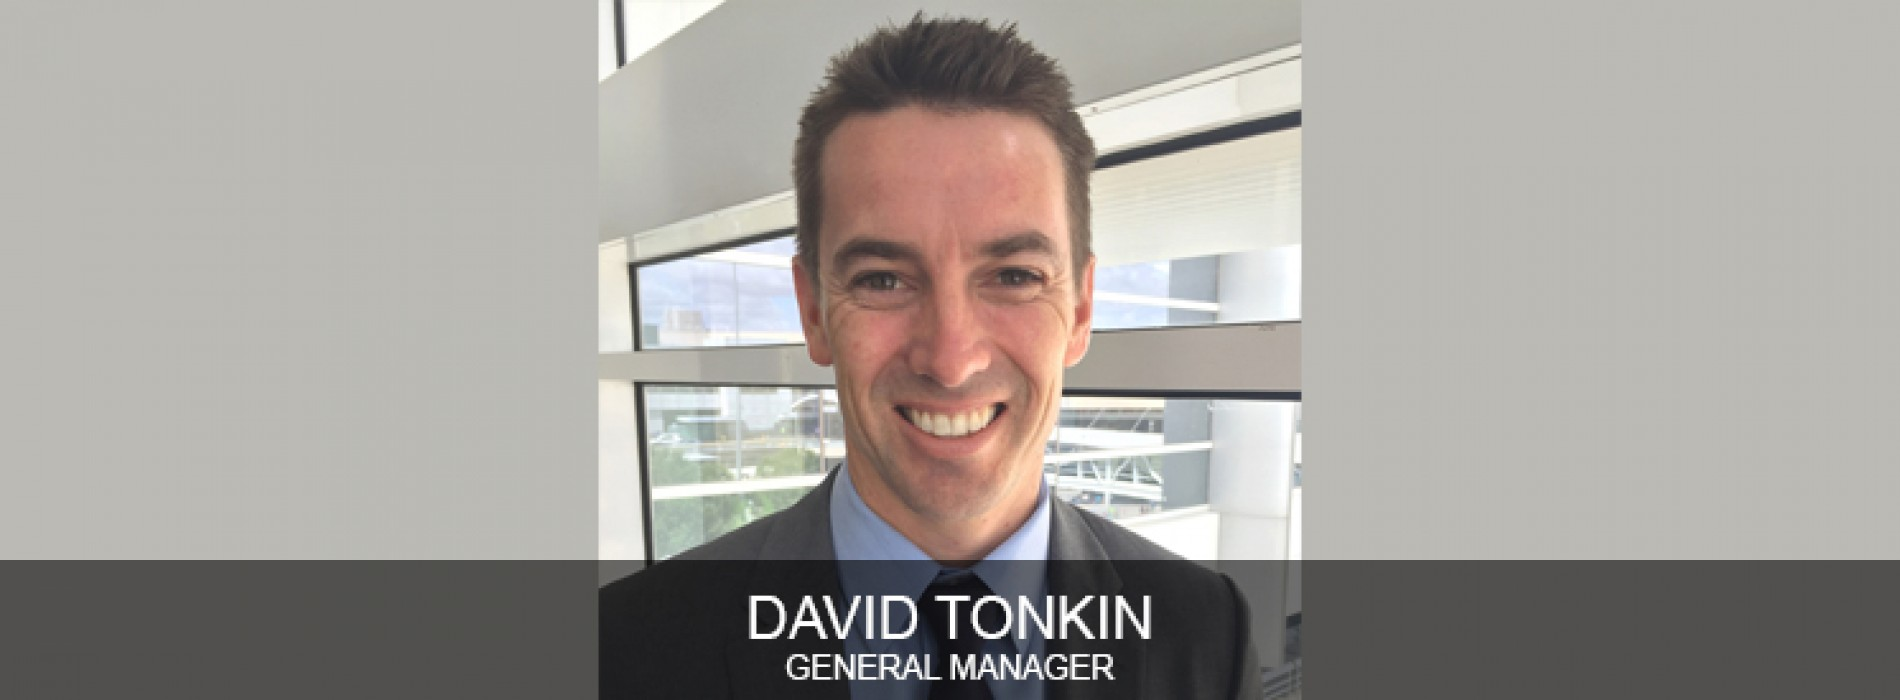 David Tonkin appointed General Manager of PARKROYAL Melbourne Airport